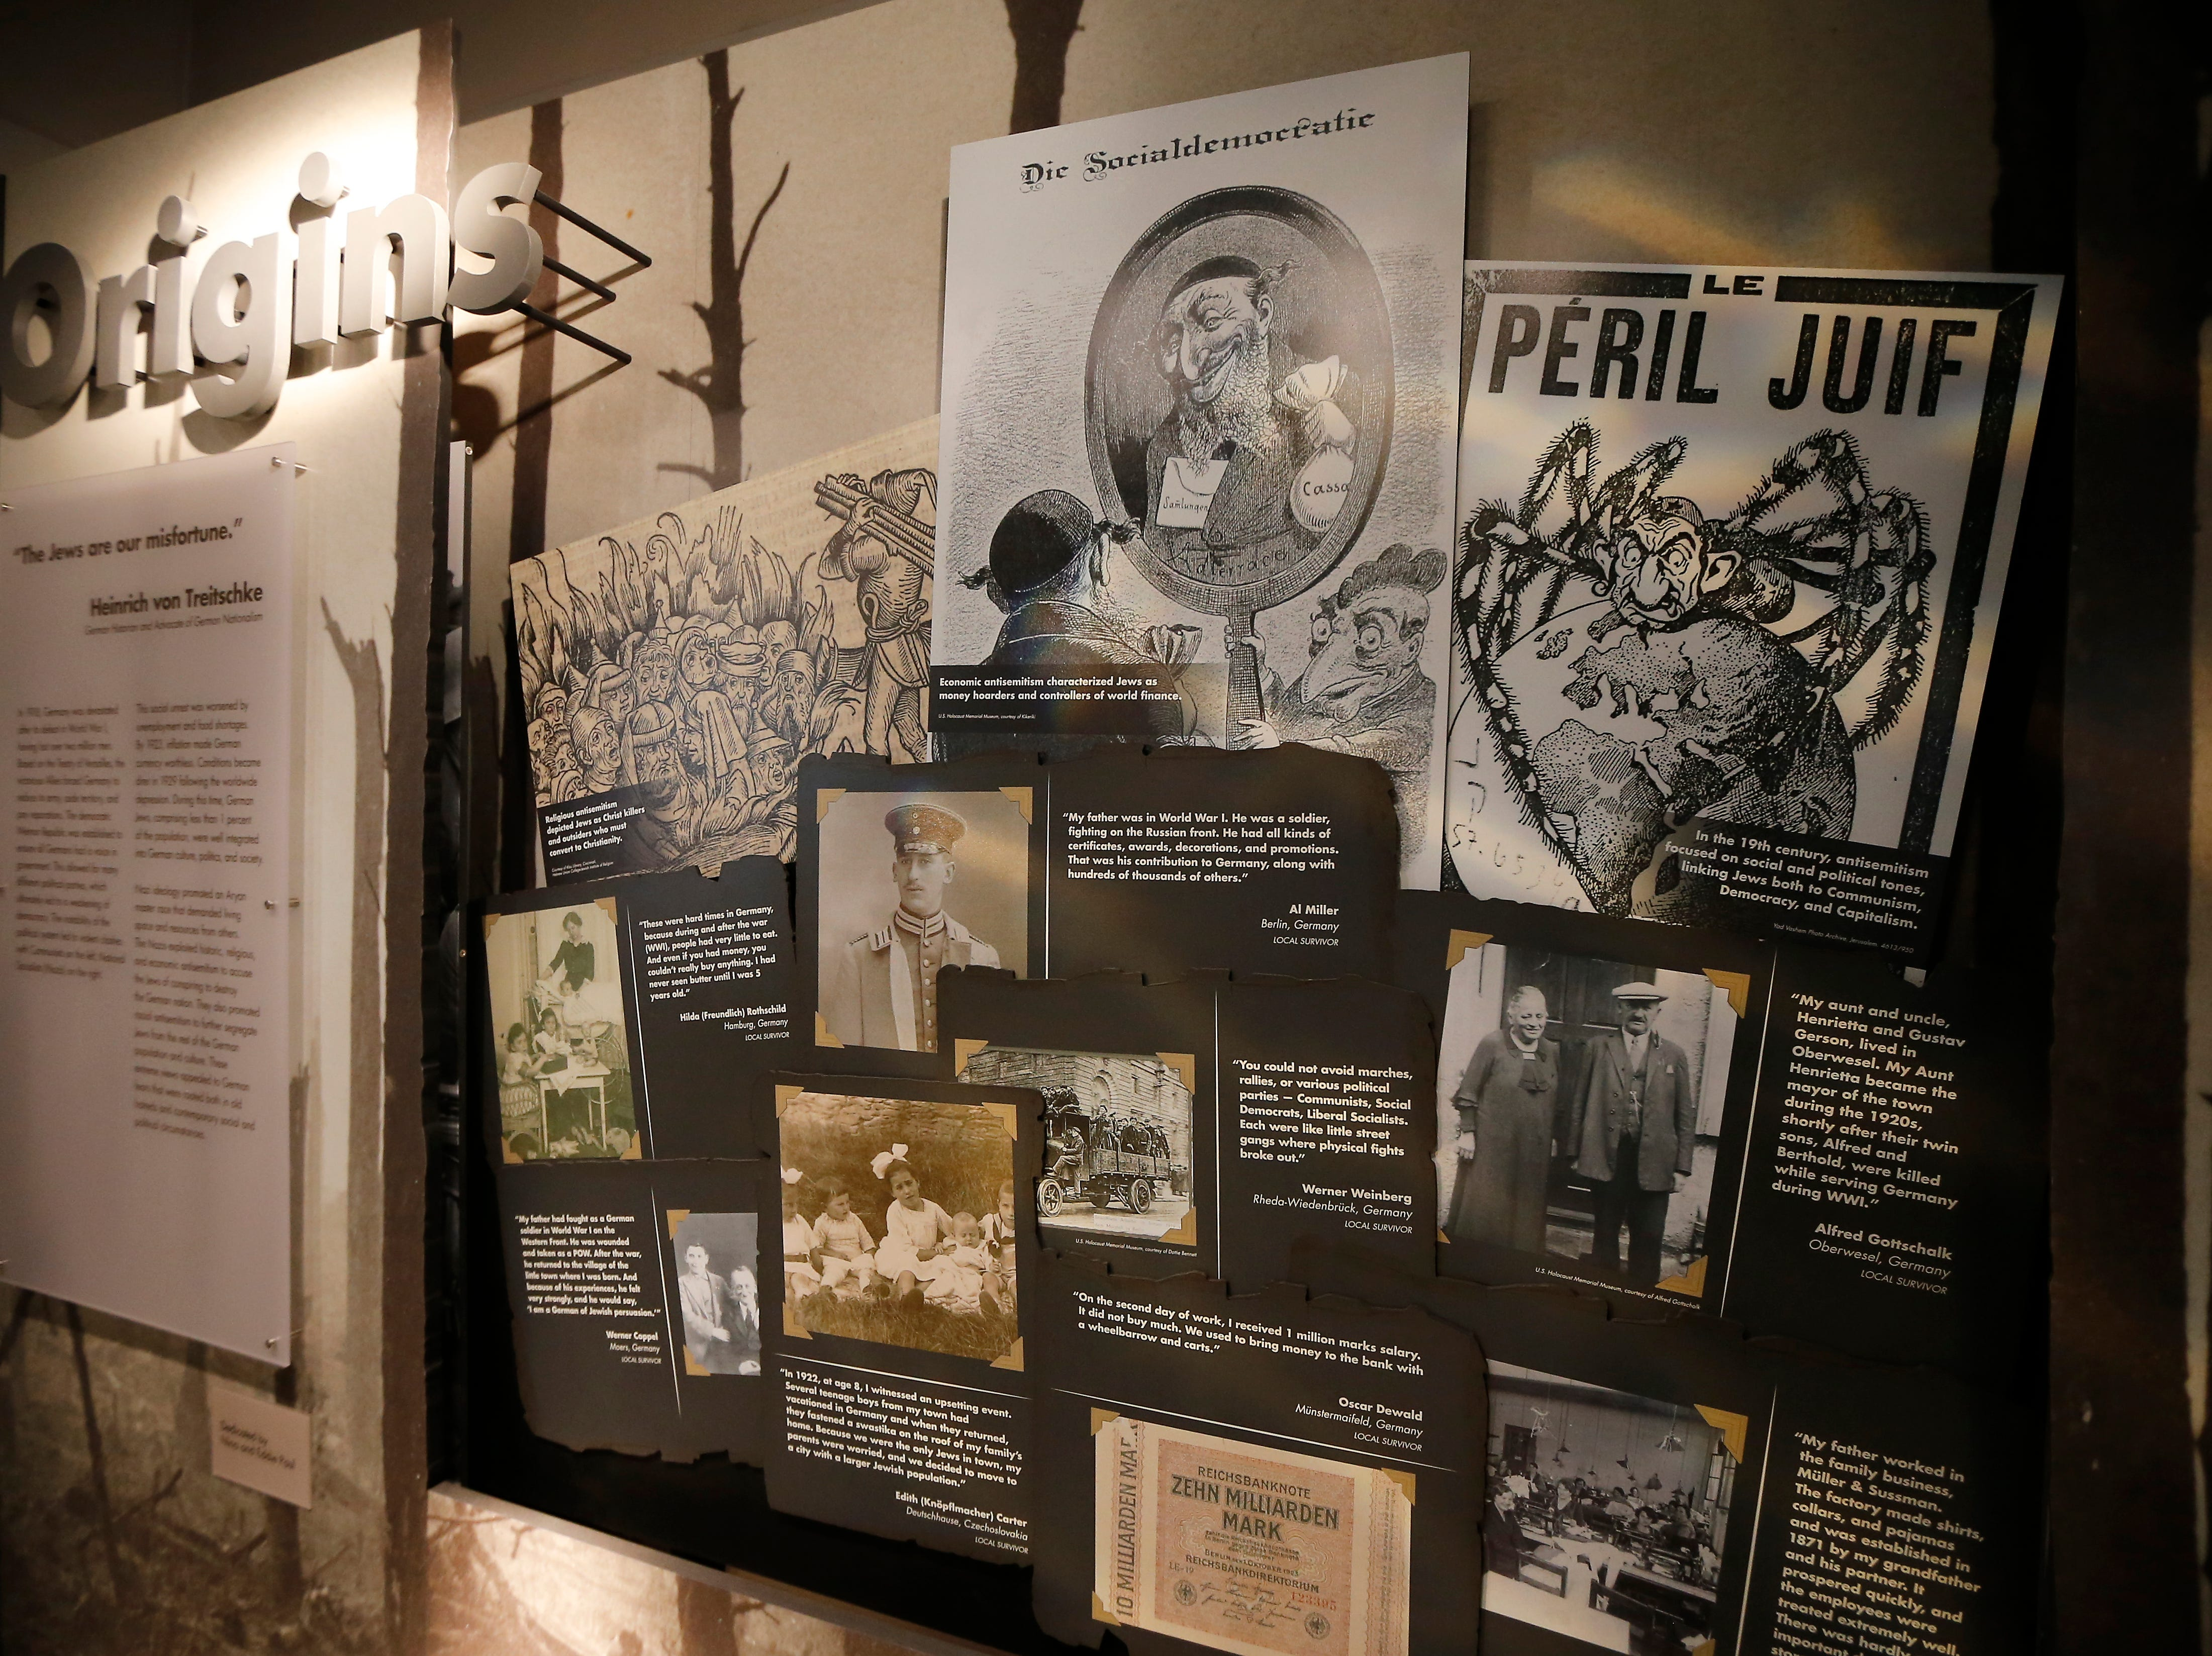 Opening panels explain origins in the new Holocaust and Humanity Center at the Cincinnati Museum Center in the Queensgate neighborhood of Cincinnati on Tuesday, Jan. 22, 2019. The new exhibit covering the events before, during and after the Holocaust will be open to the public Jan. 27.